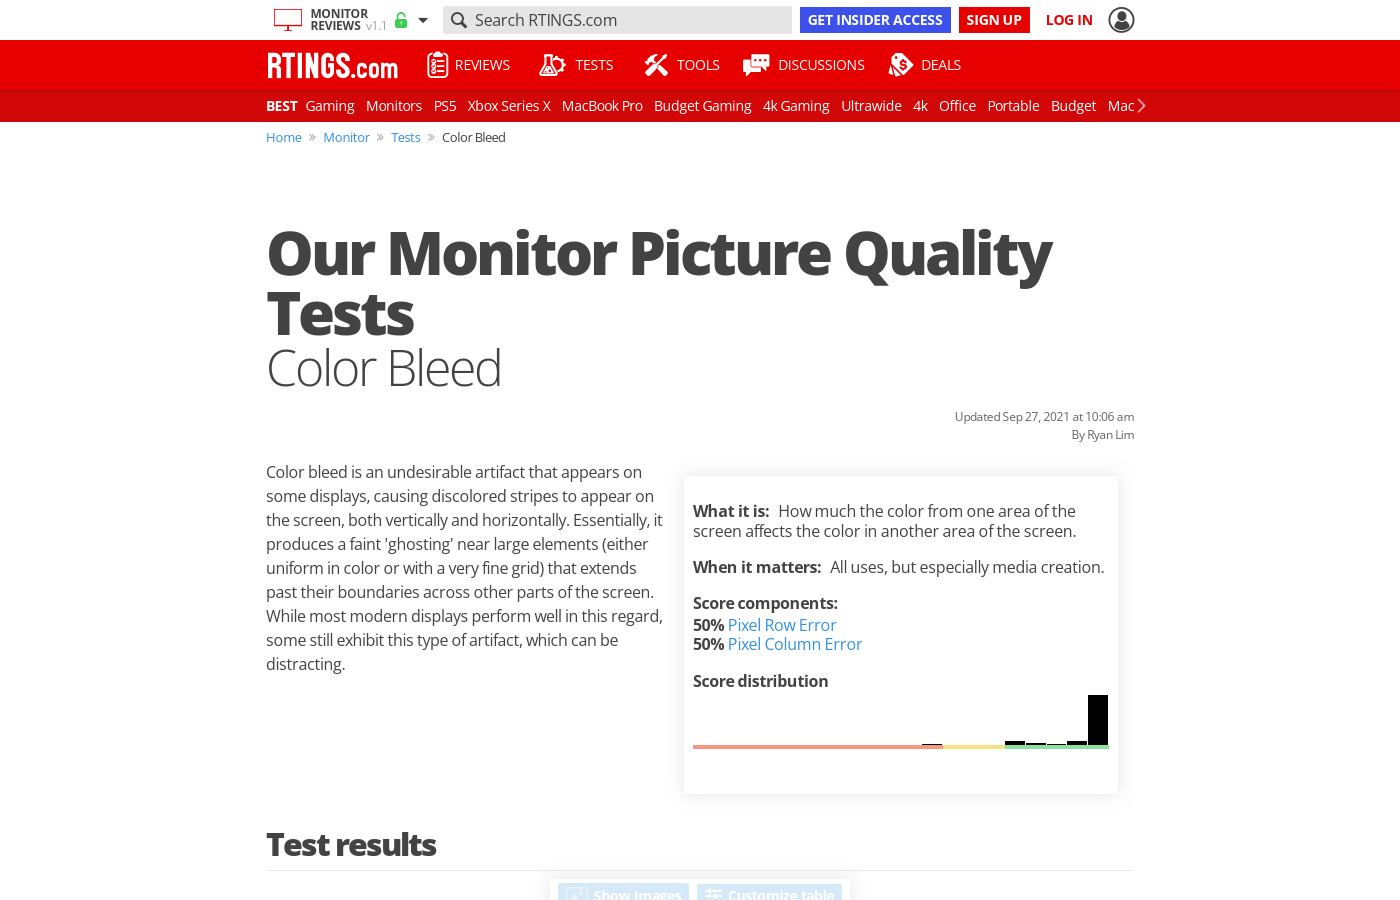 Our Tests: Color Bleed